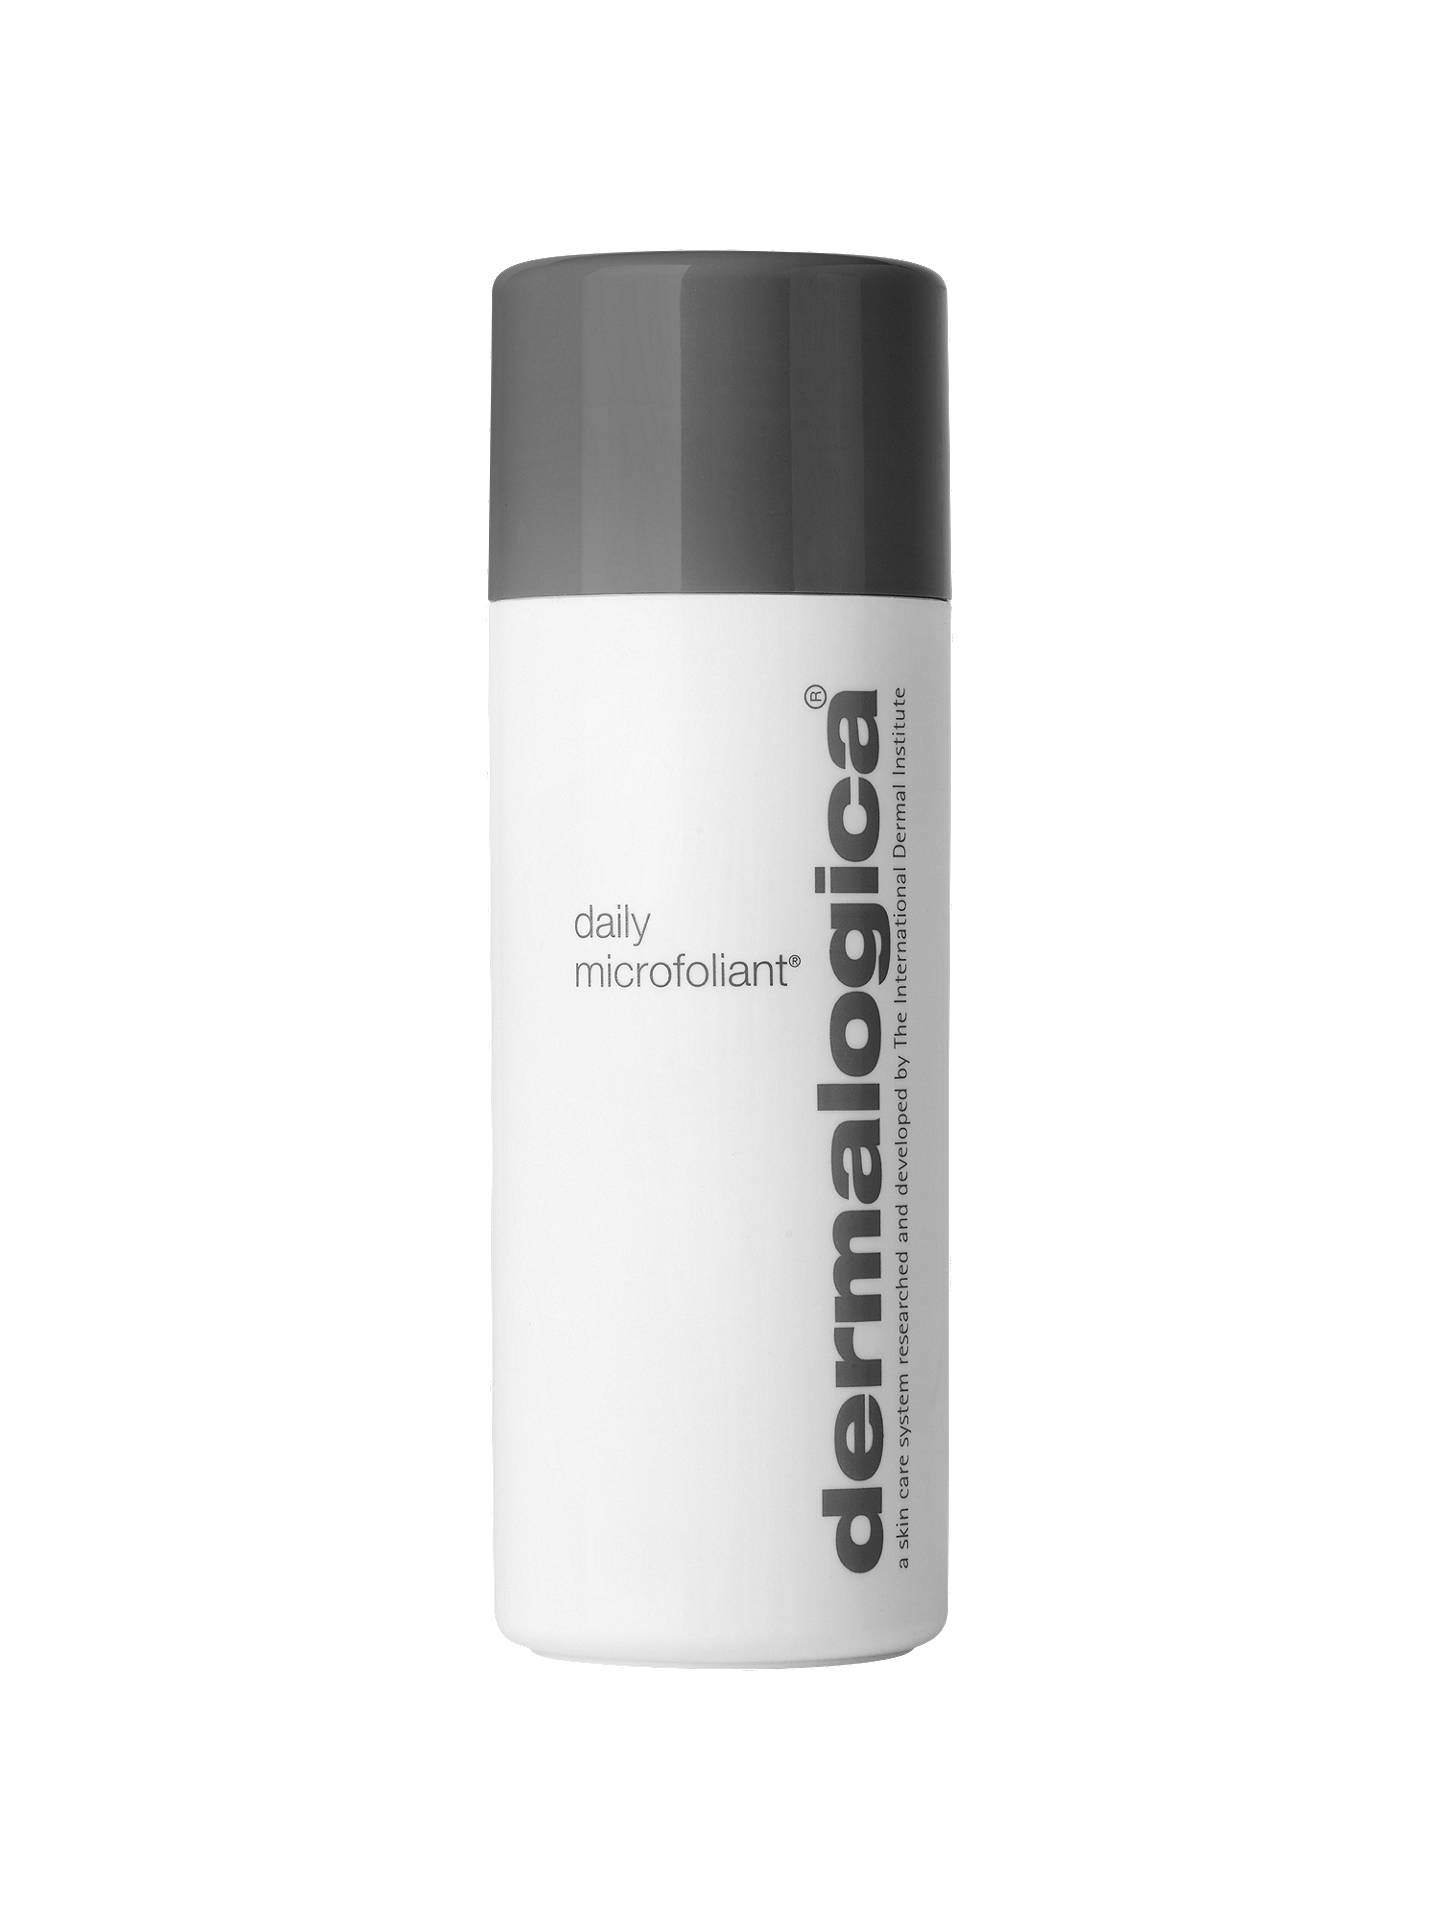 BuyDermalogica Daily Microfoliant® 7e570a339636